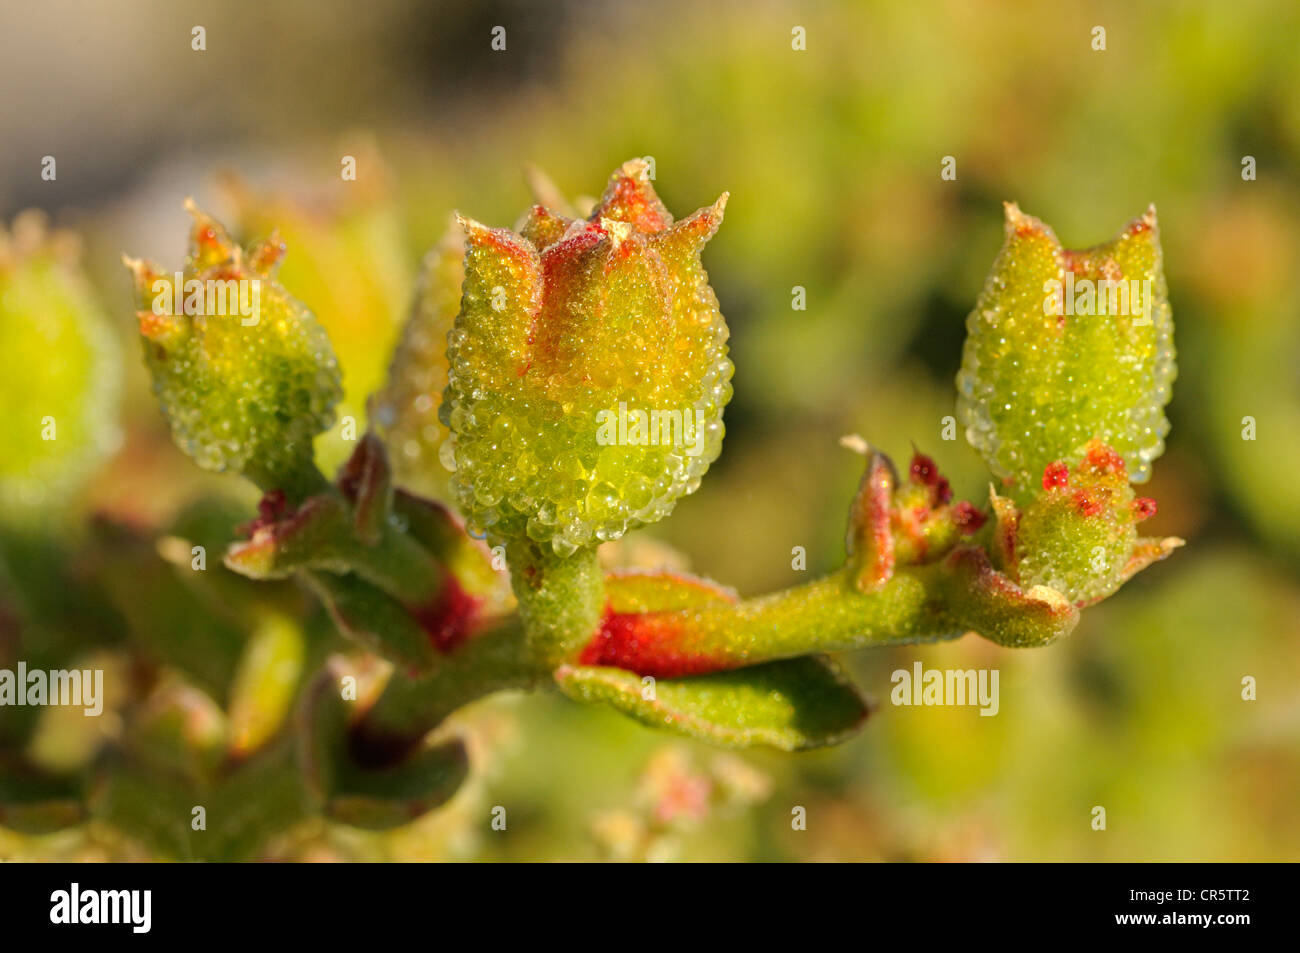 Mesmbryanthemum sp. developing fruit capsules, Aizoaceae, Mesembs, Goegap Nature Reserve, Namaqualand, South Africa, - Stock Image